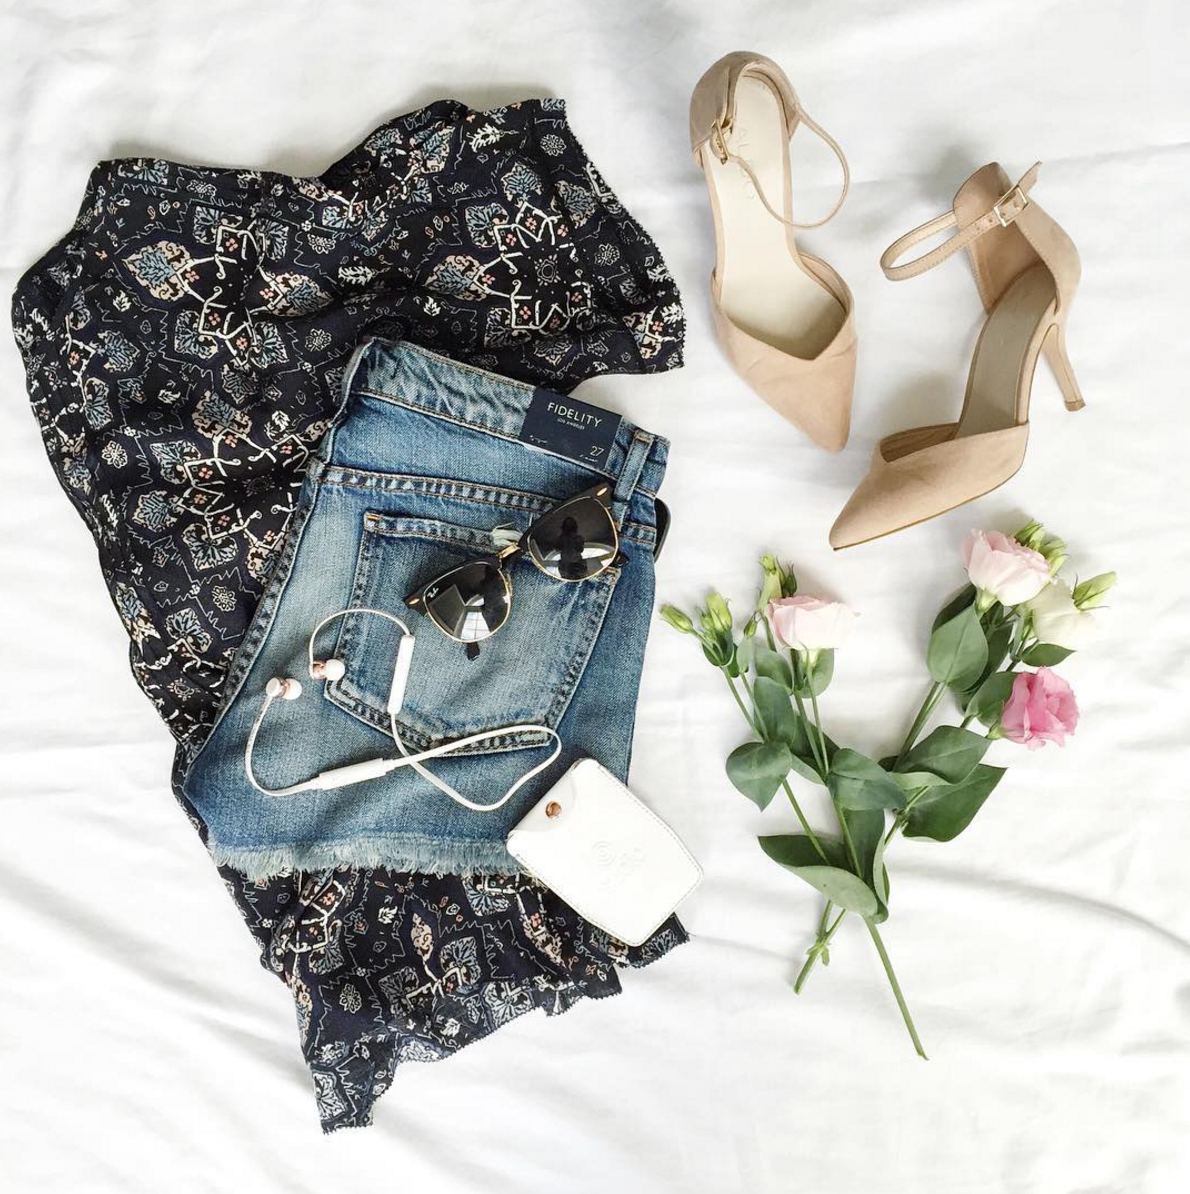 Tips for instagram flat lay photography, from Toronto-based Instagrammer, Jackie Goldhar (@jackmise)